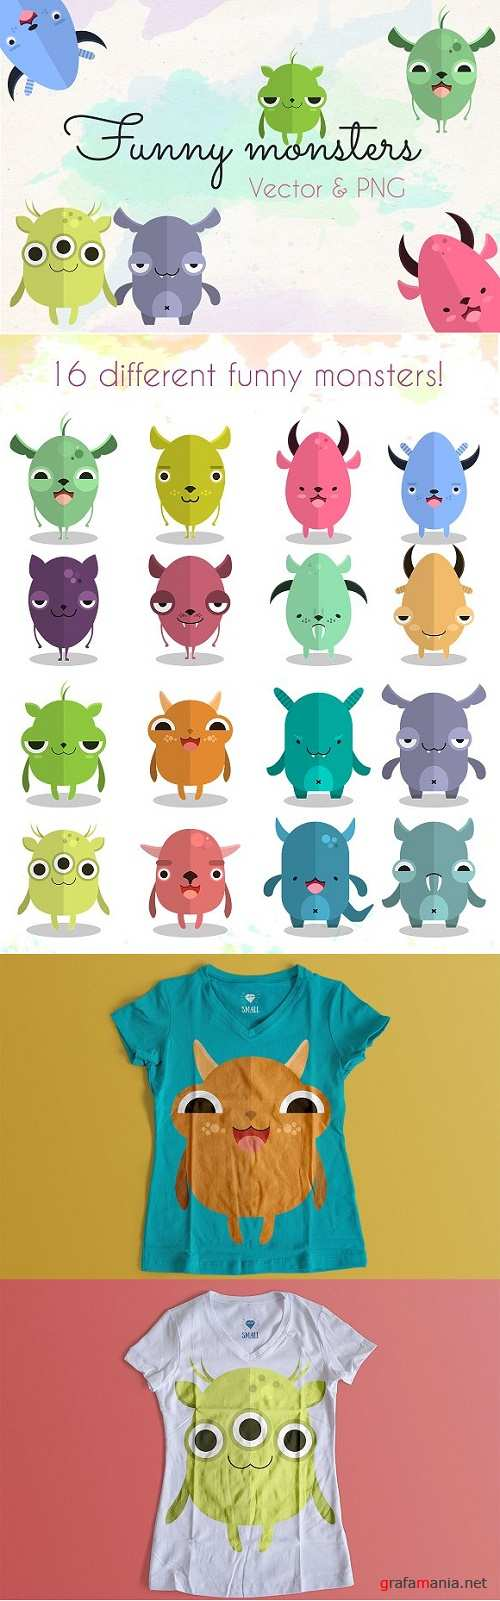 Funny monsters collection - 536219